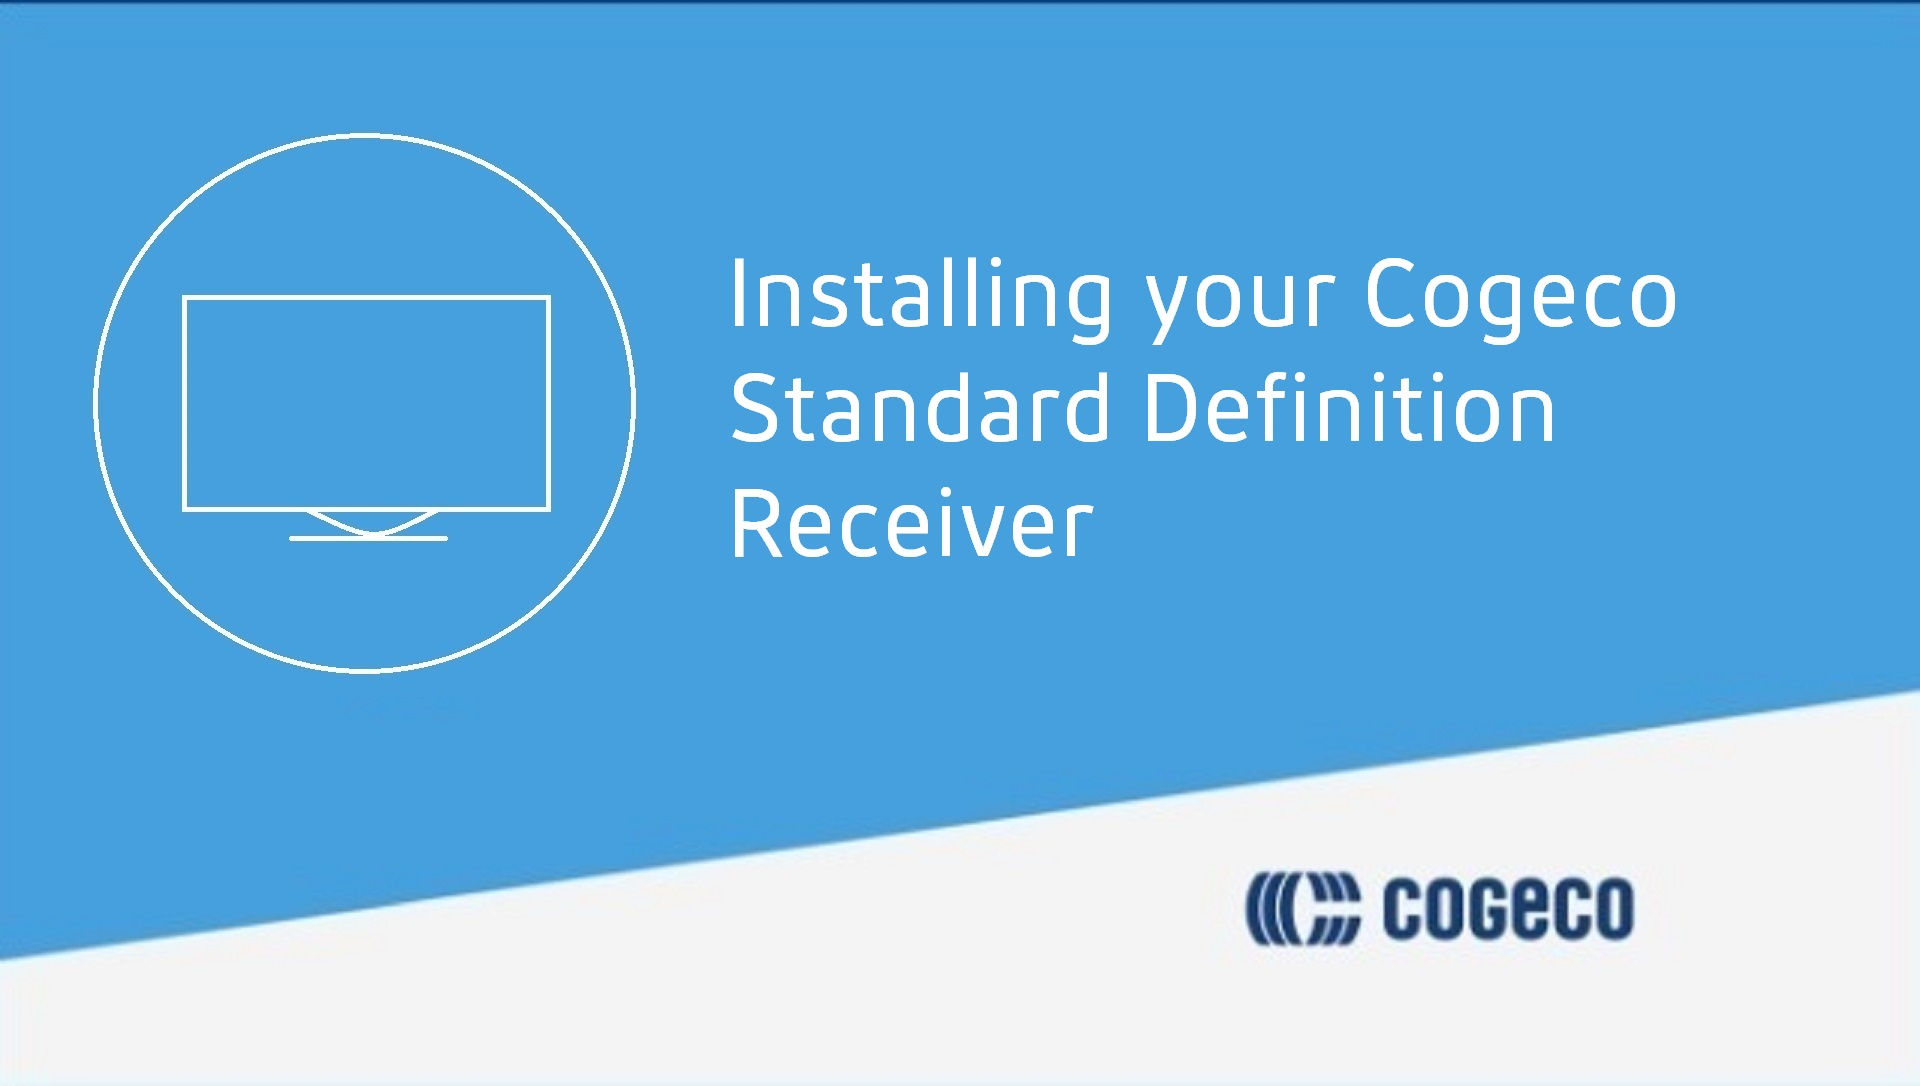 Installing your Cogeco Standard Definition Receiver